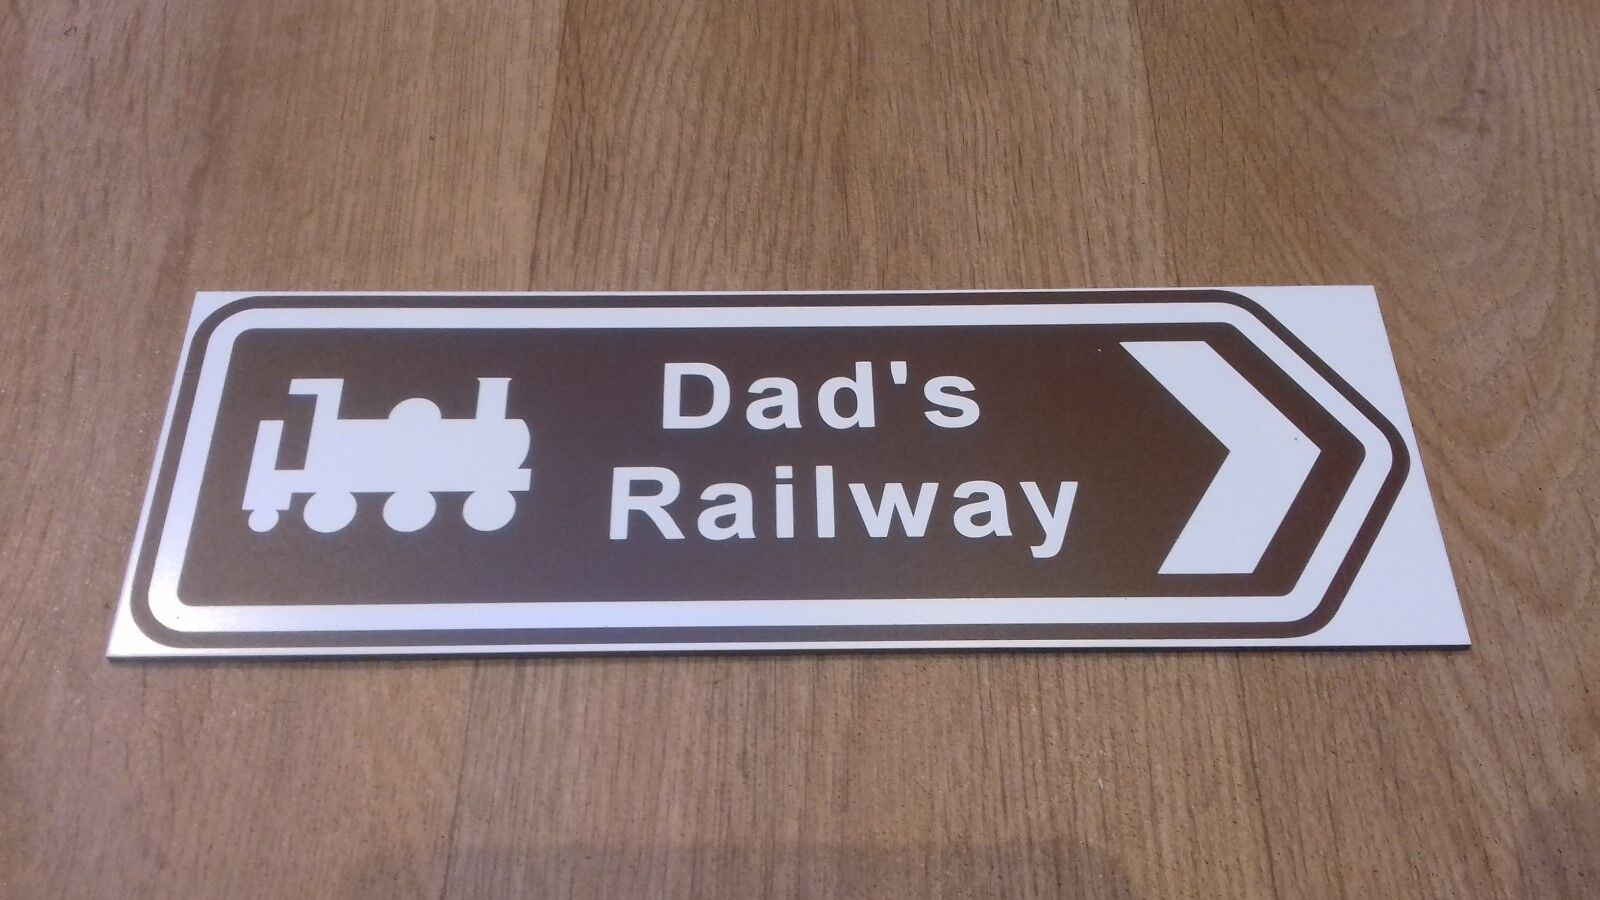 Ride on Railways Railways Railways -  Dad's Railway  brown arrow sign 1d6835